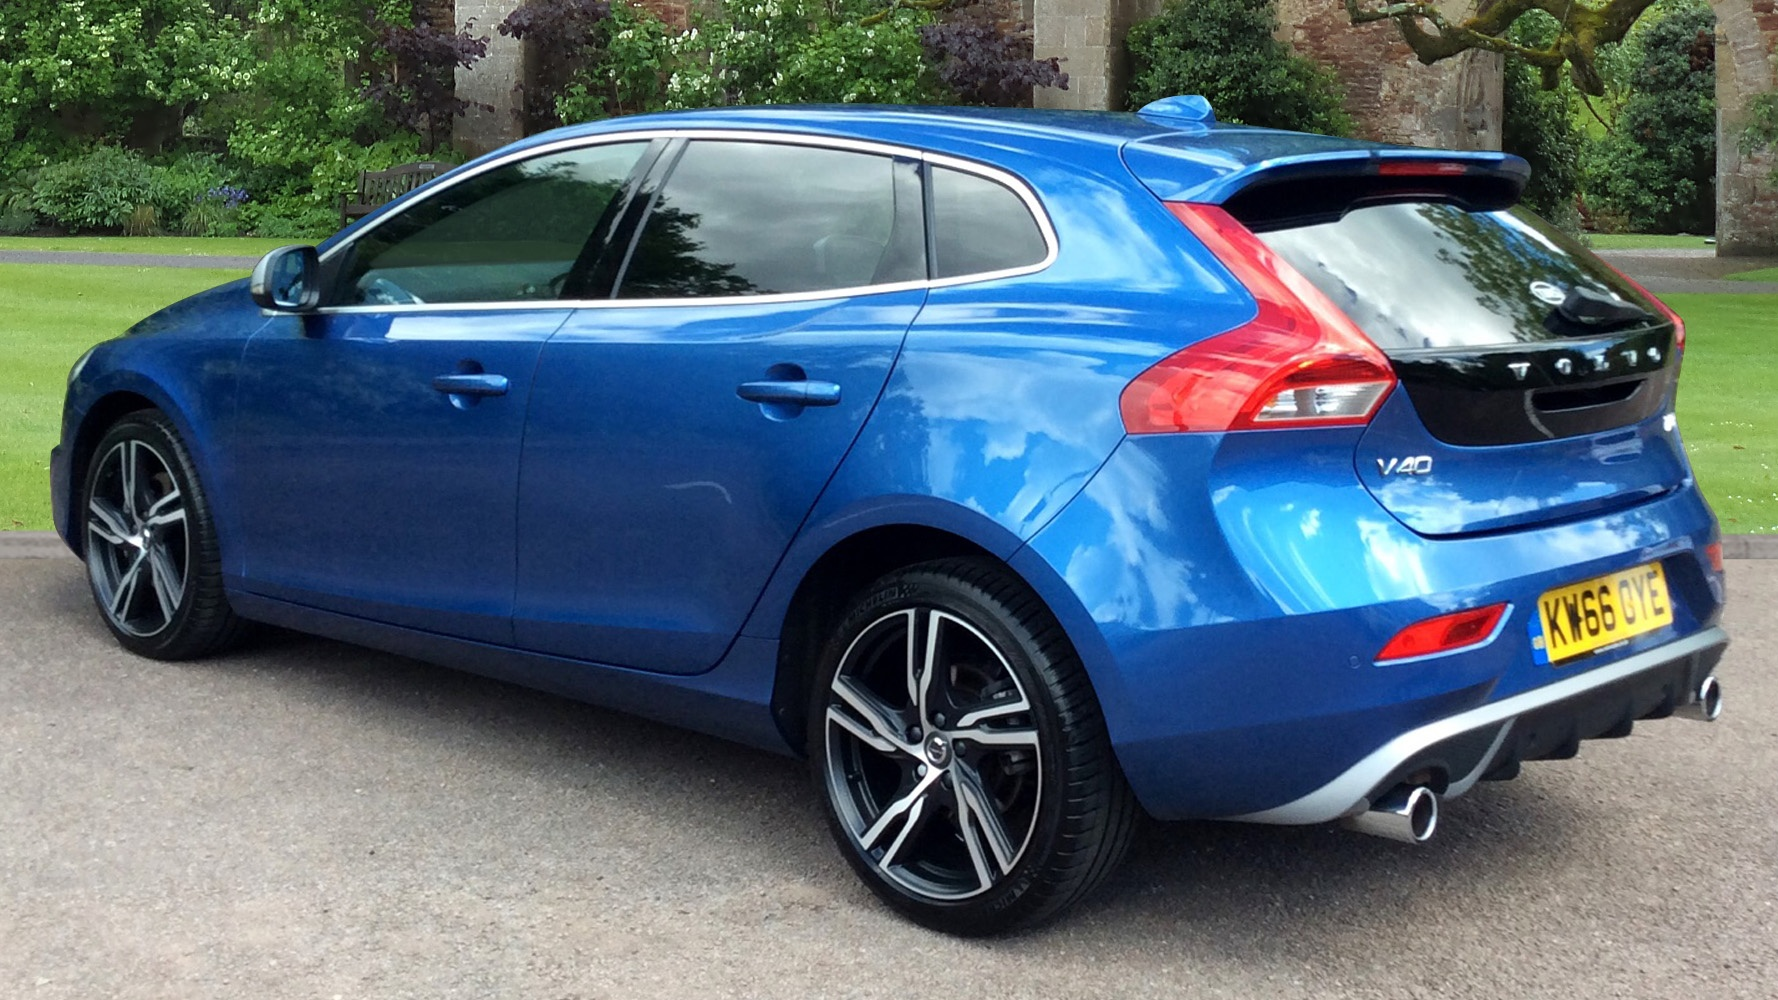 volvo v40 t5 245bhp 35k new big spec r design pro automatic used vehicle by tms coventry. Black Bedroom Furniture Sets. Home Design Ideas